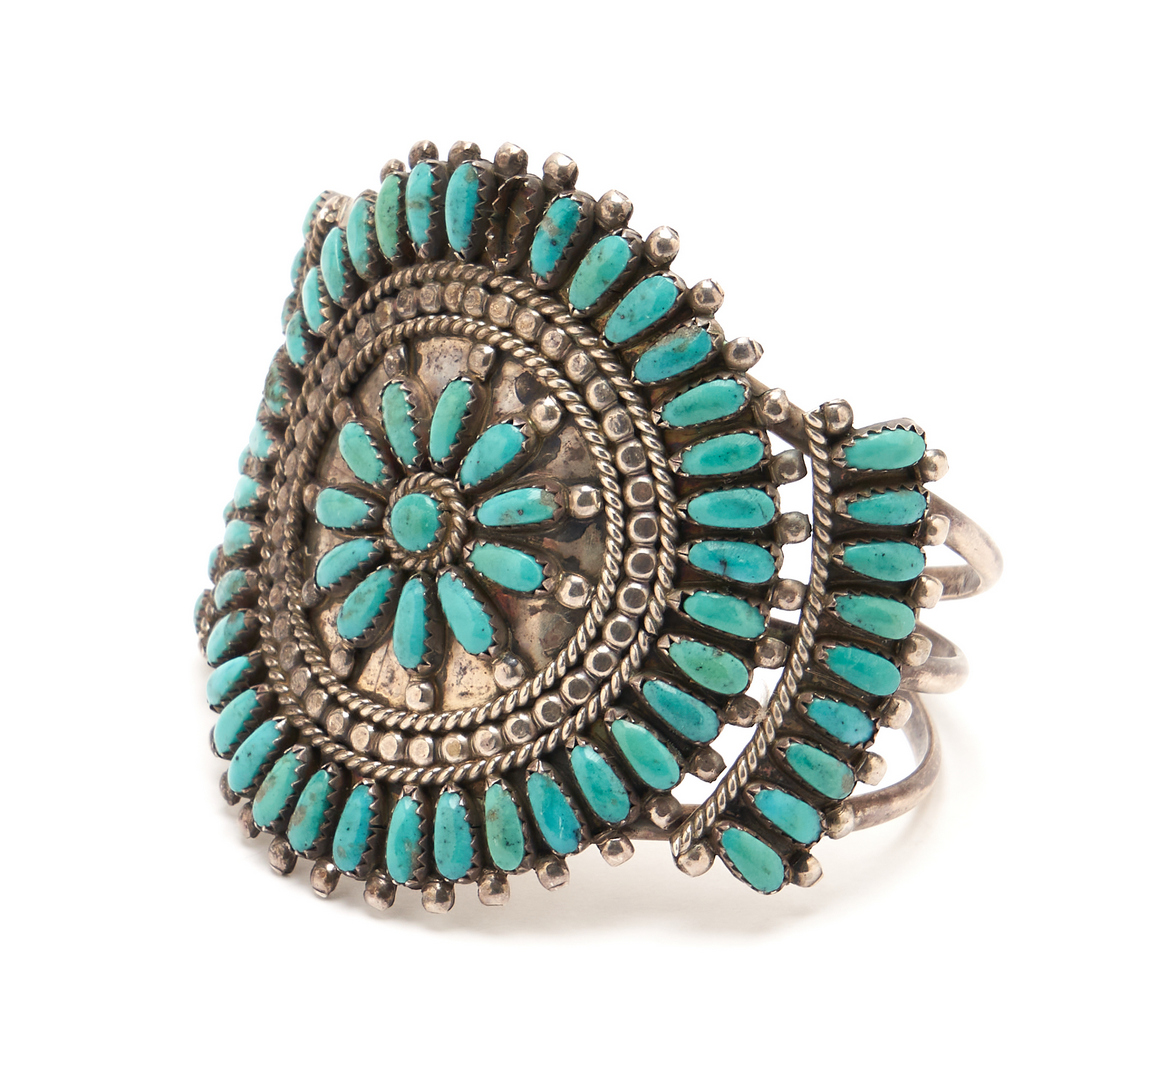 Lot 1093: 4 Native American Turquoise & Silver Jewelry Items, incl. Bolo Tie